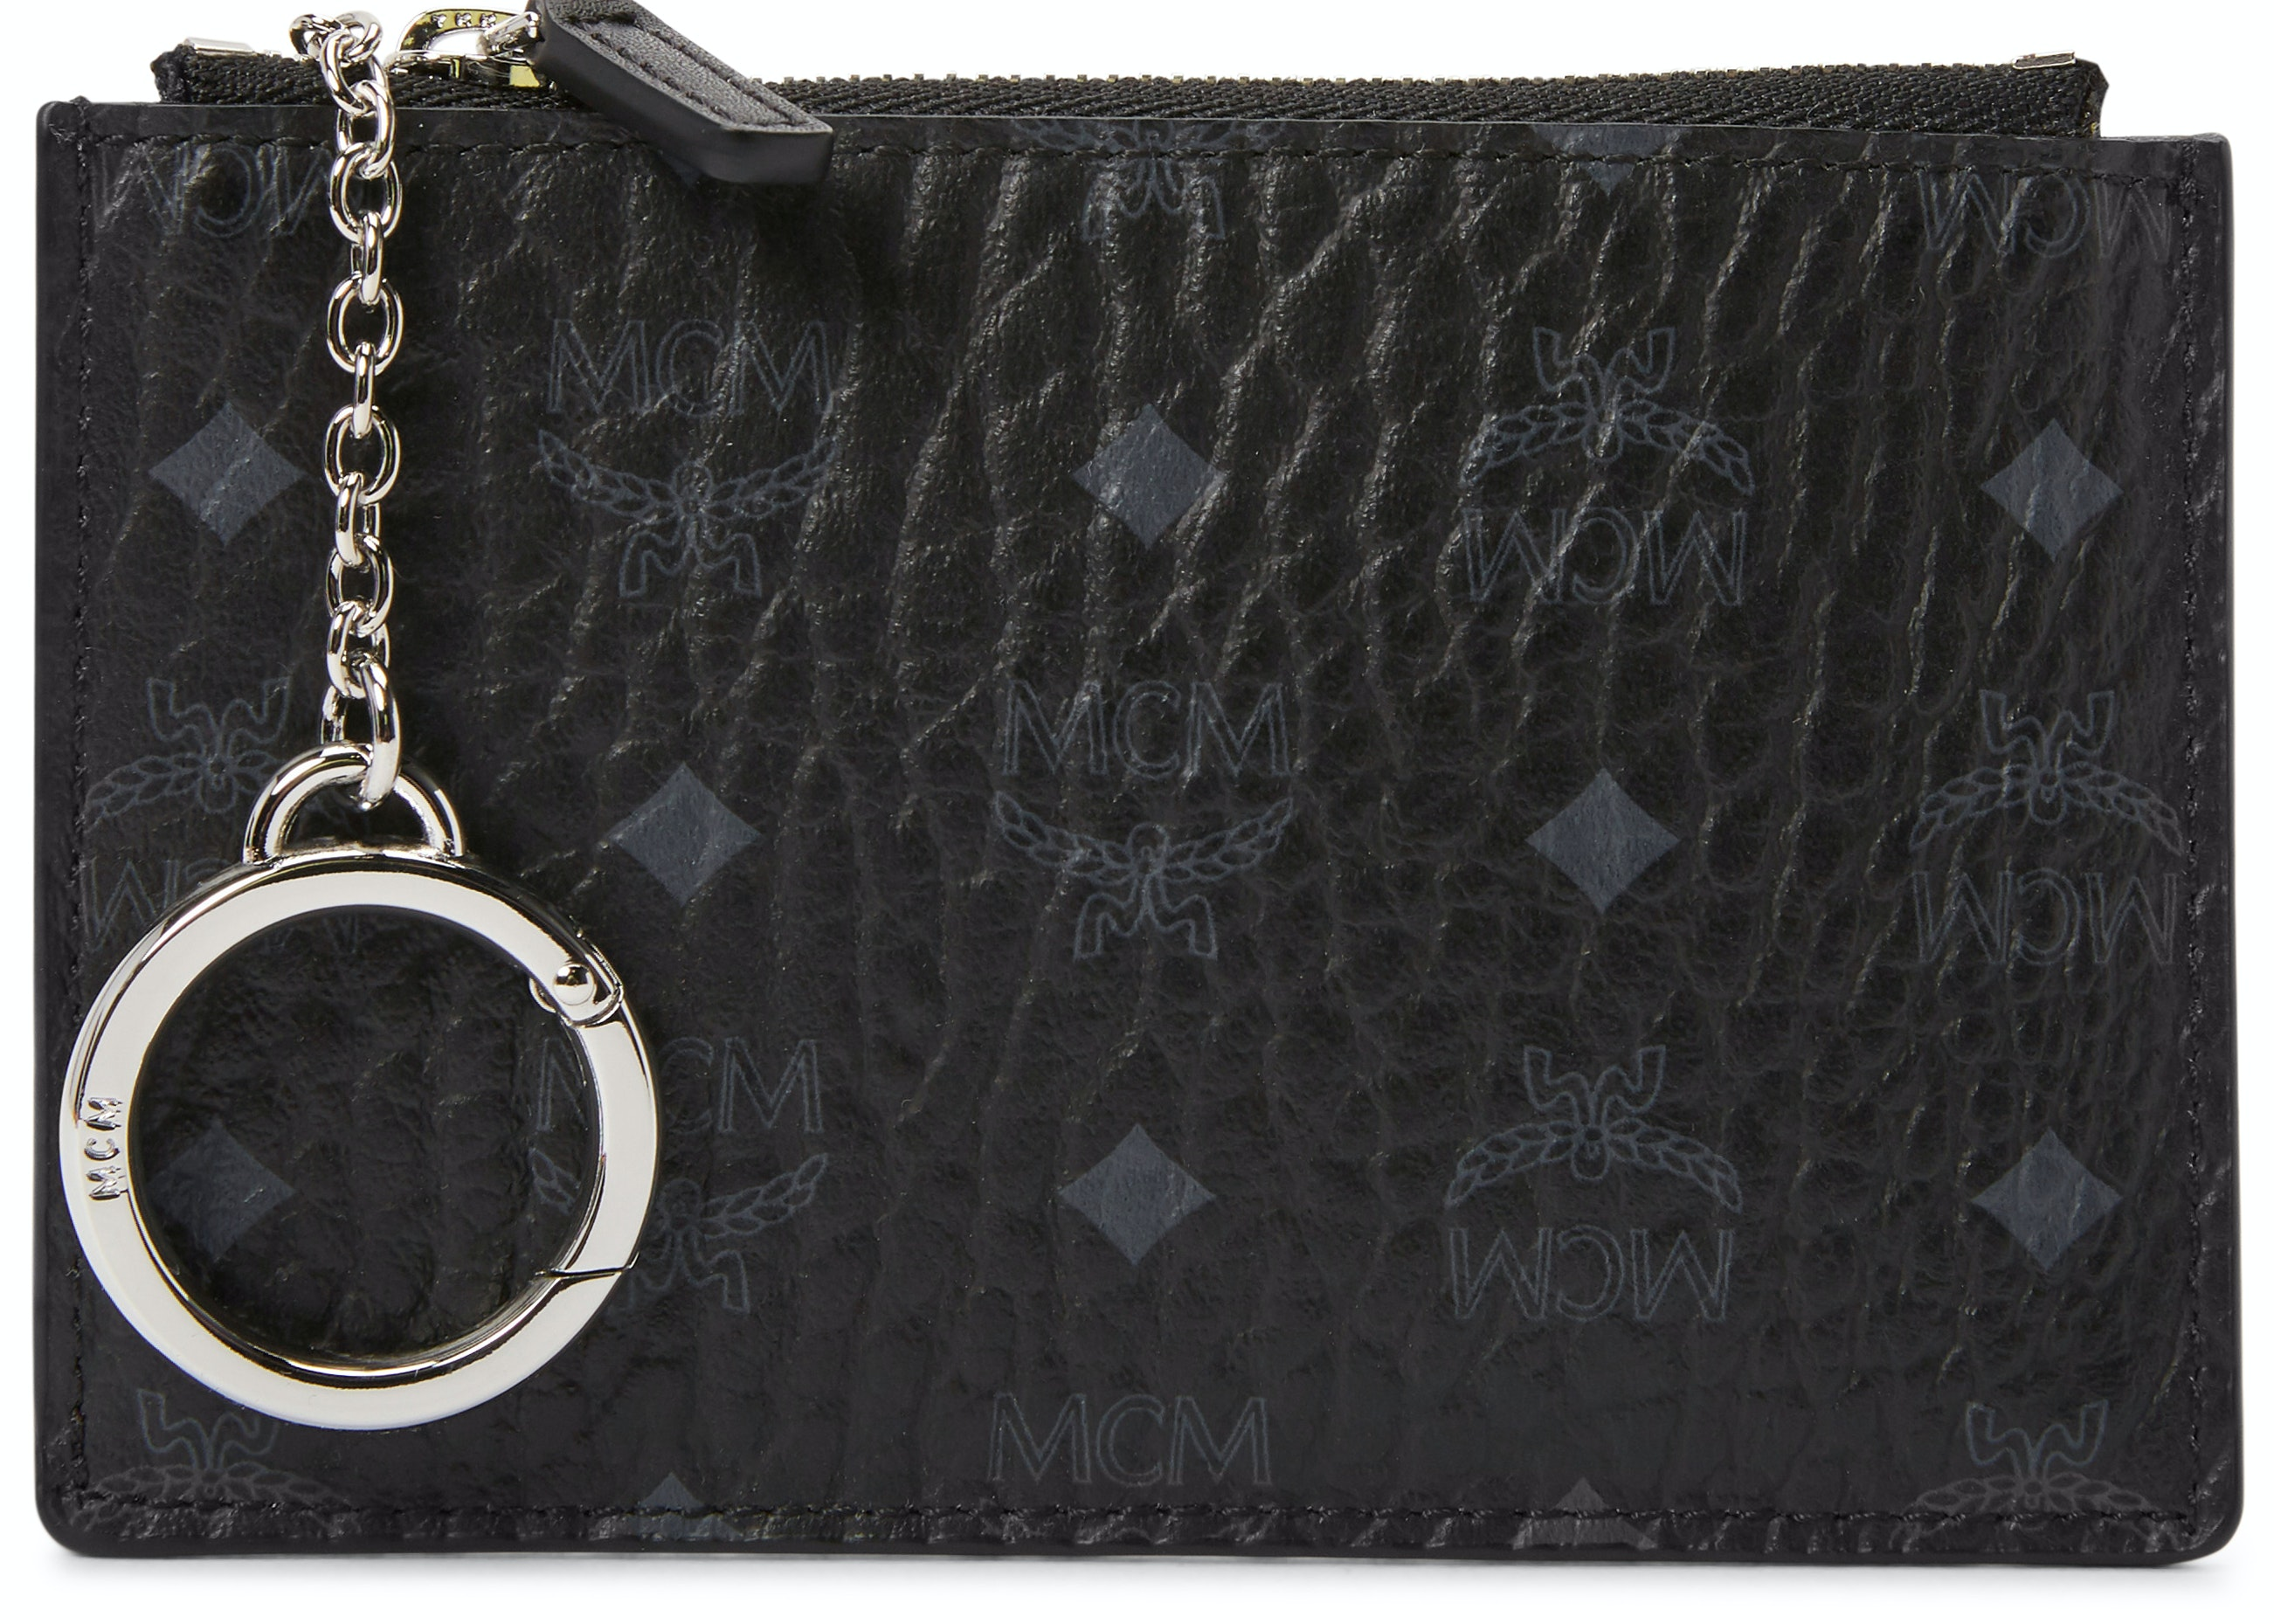 MCM Key Pouch Visetos Mini Black